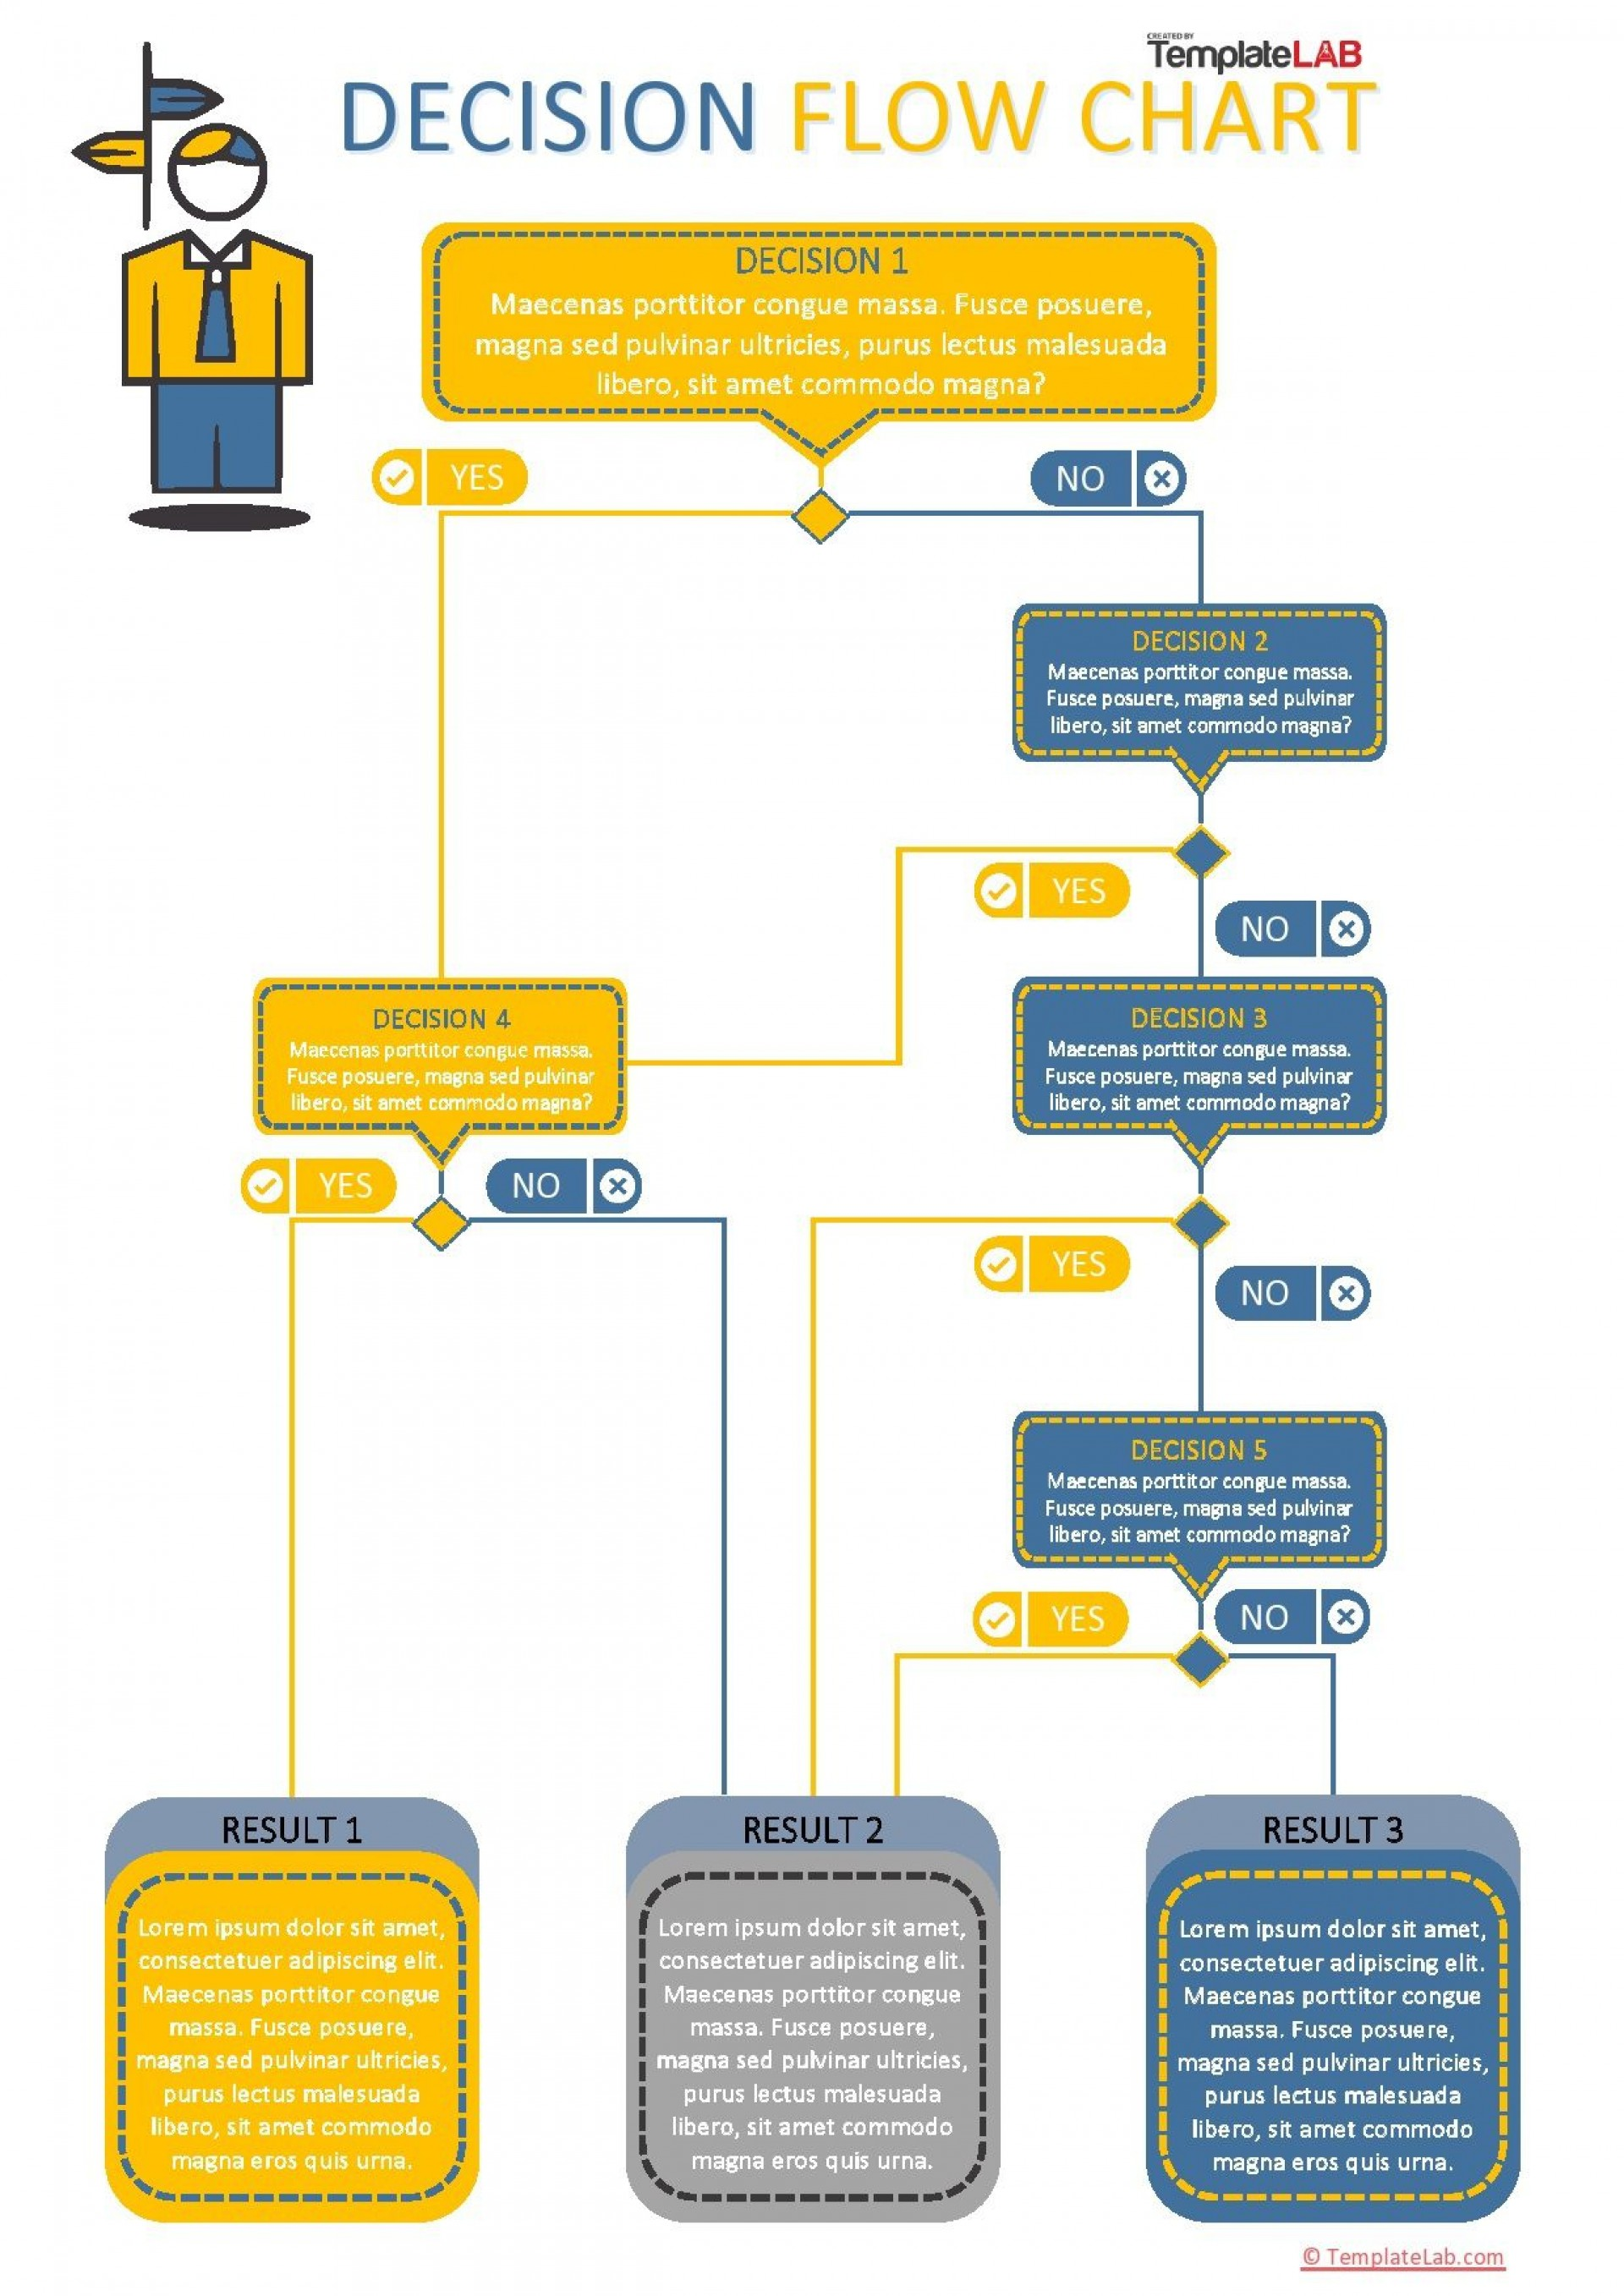 004 Staggering Detailed Proces Map Template Excel Concept  Swimlane Flow Chart Thought1920